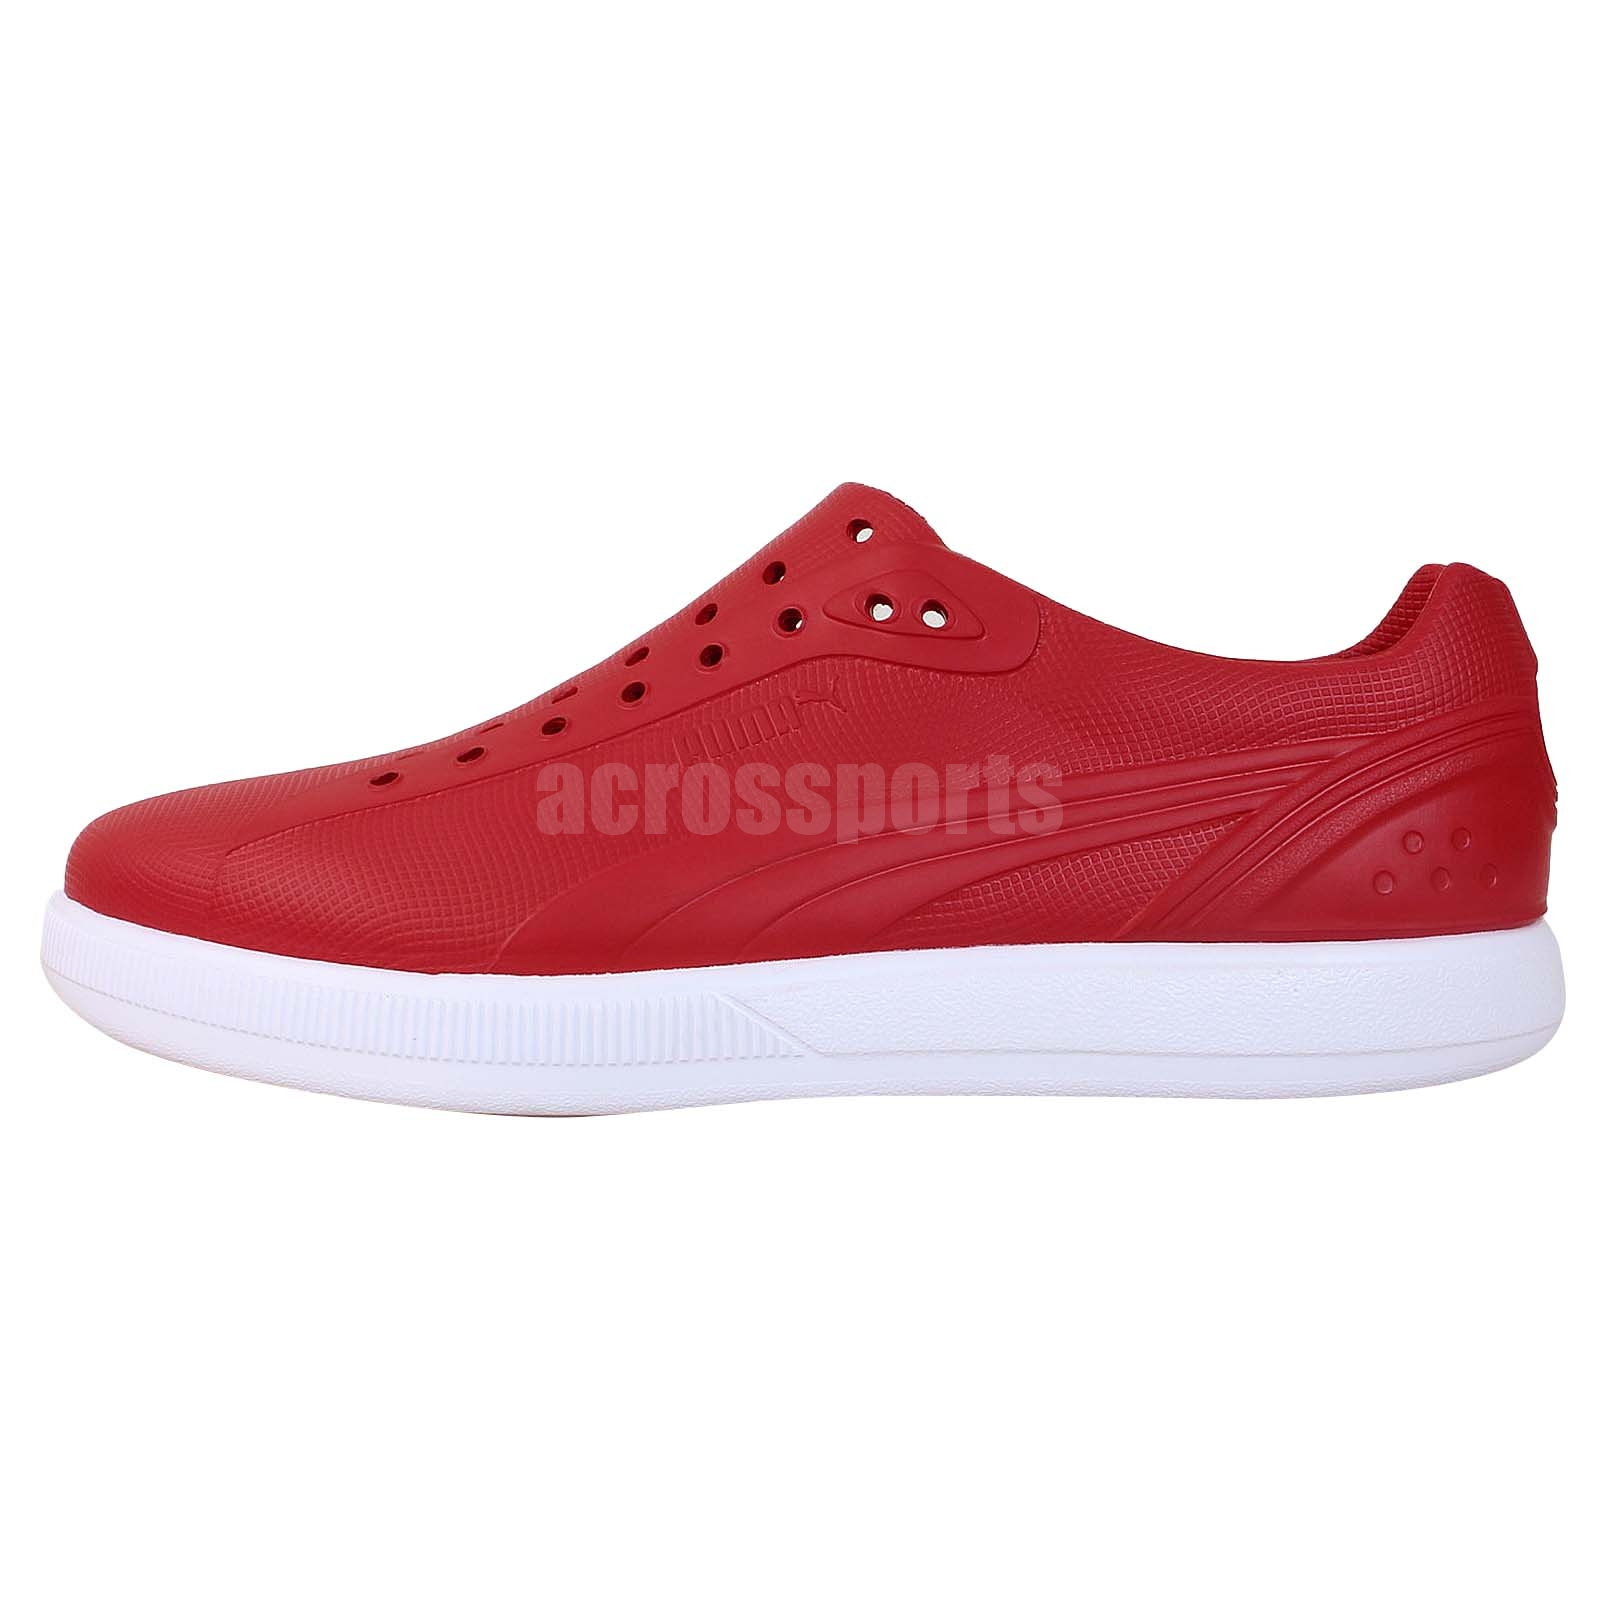 future suede injex white rubber water shoes slip